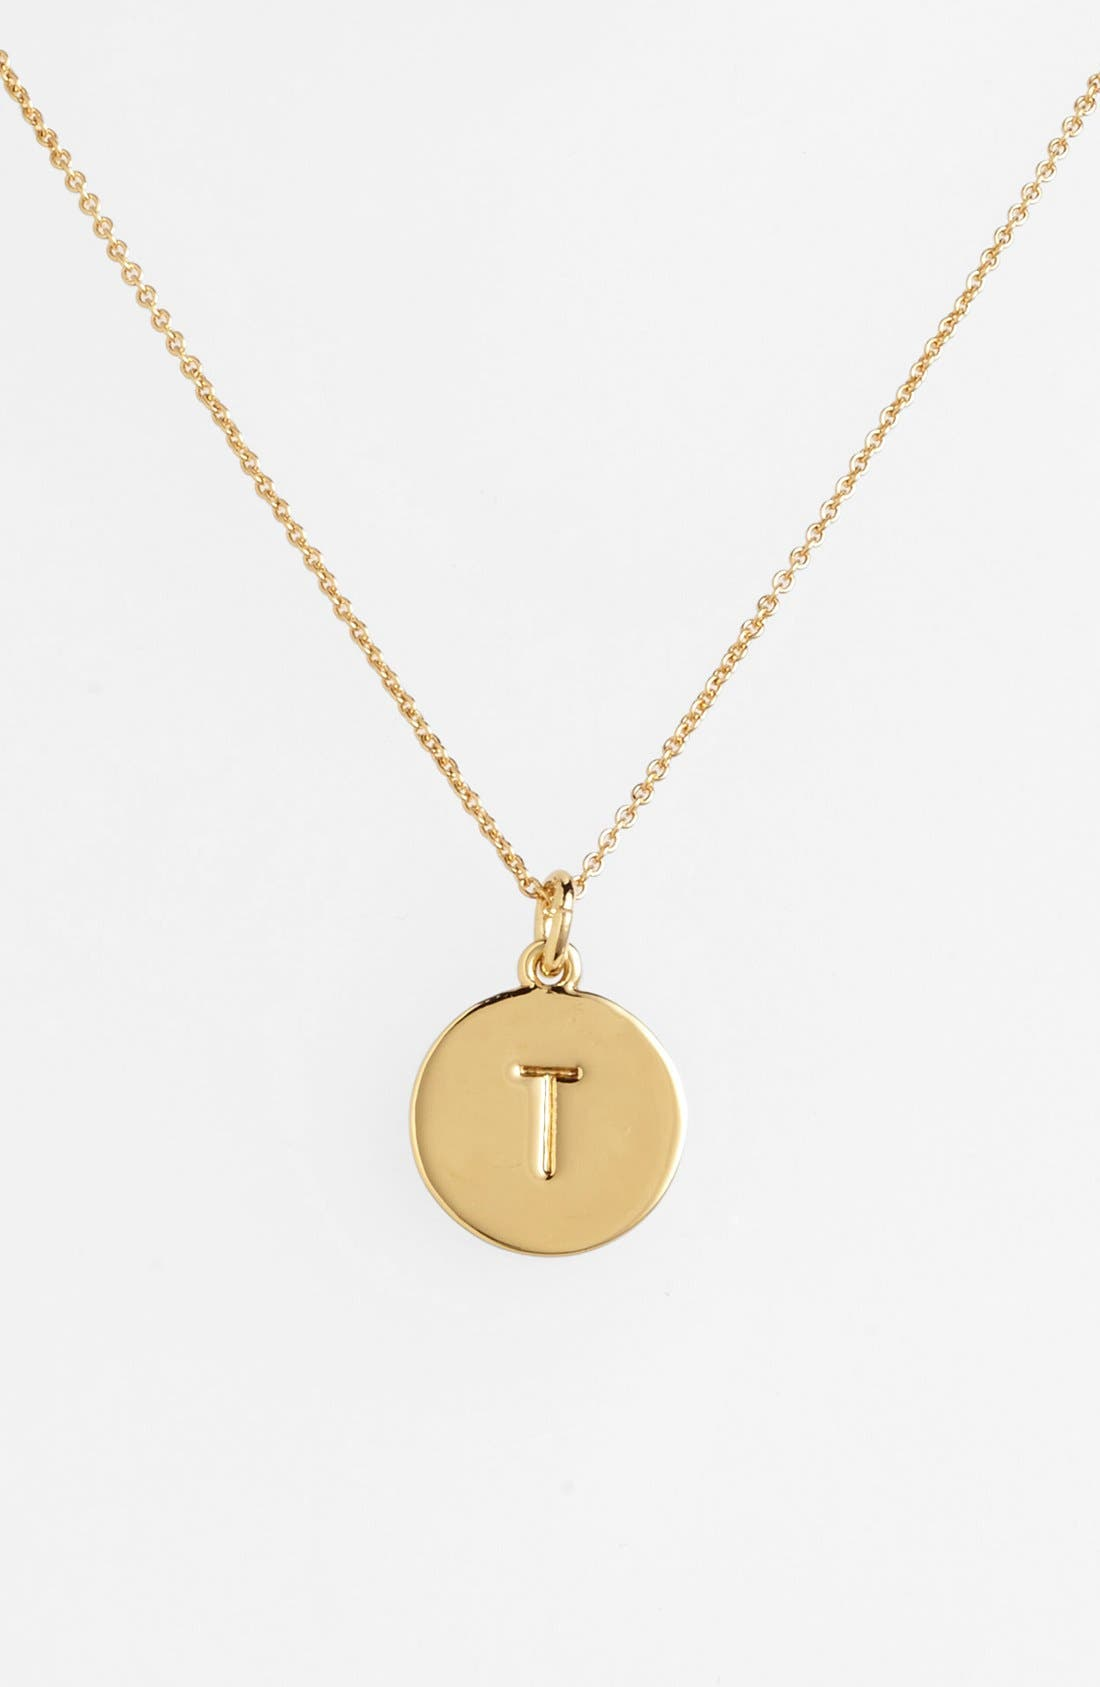 Alternate Image 1 Selected - kate spade new york 'one in a million' initial pendant necklace